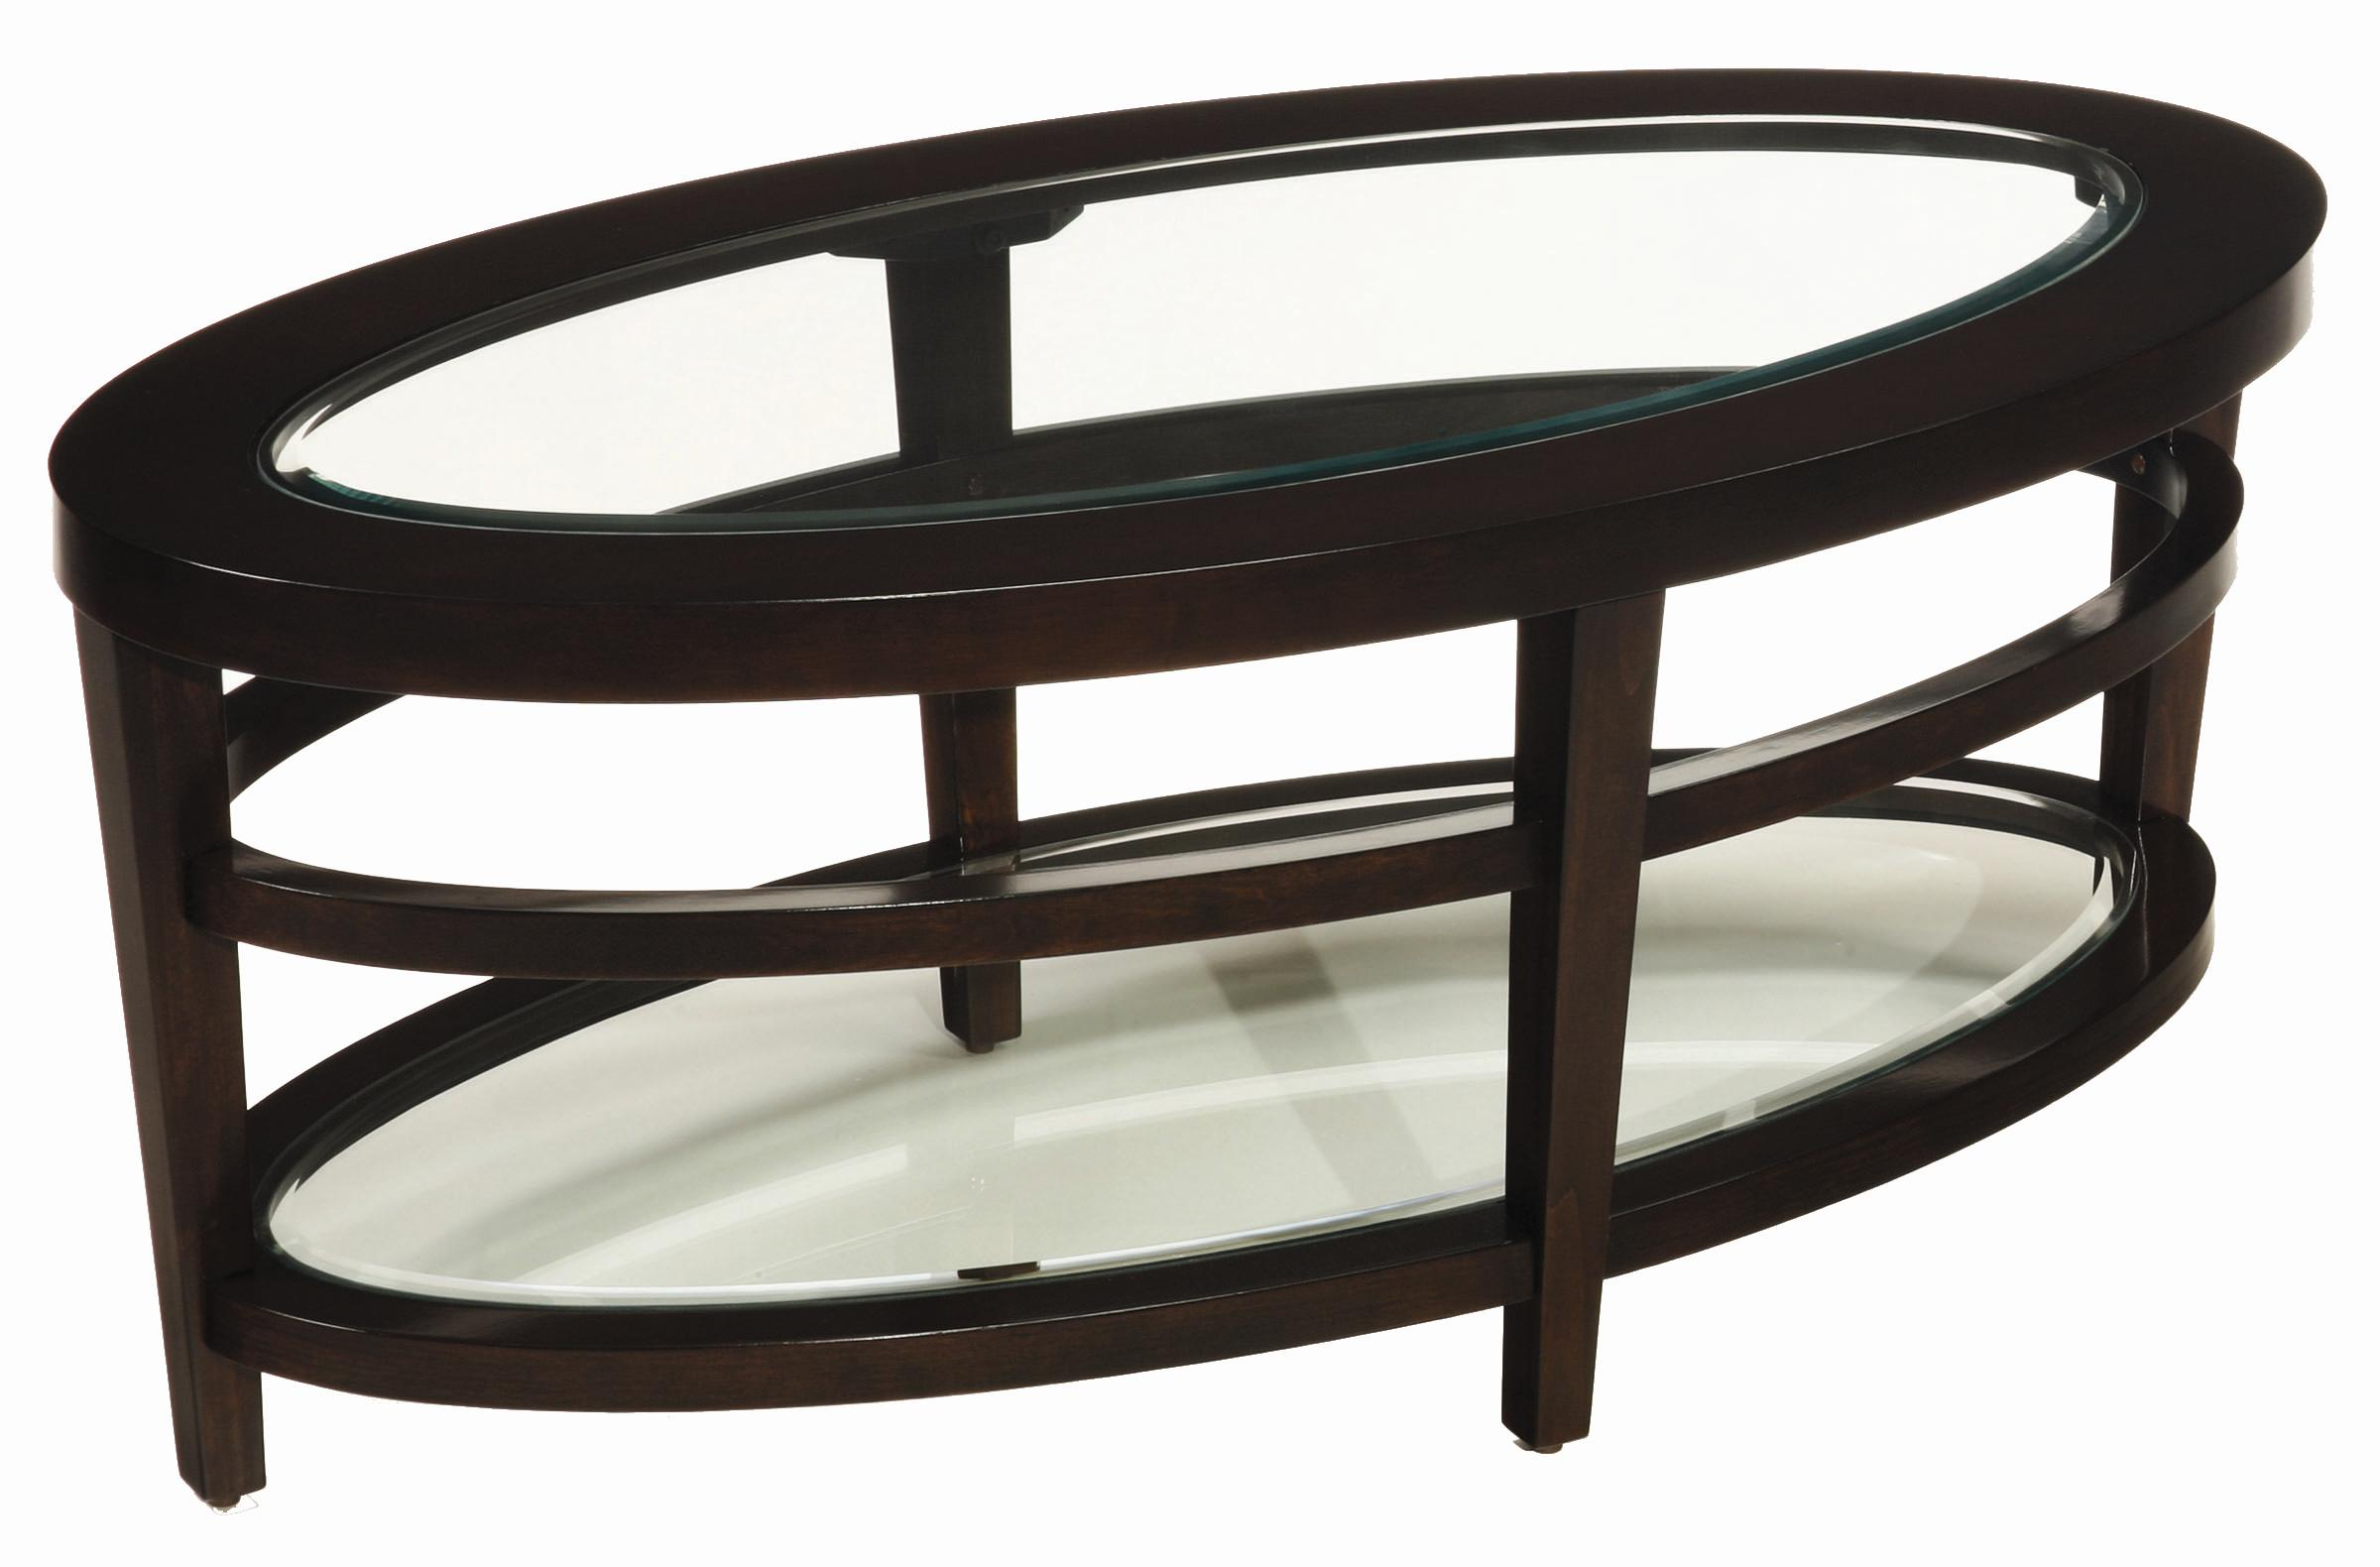 Morris Home Atwell Atwell Ave Cocktail Table - Item Number: T2081506-00